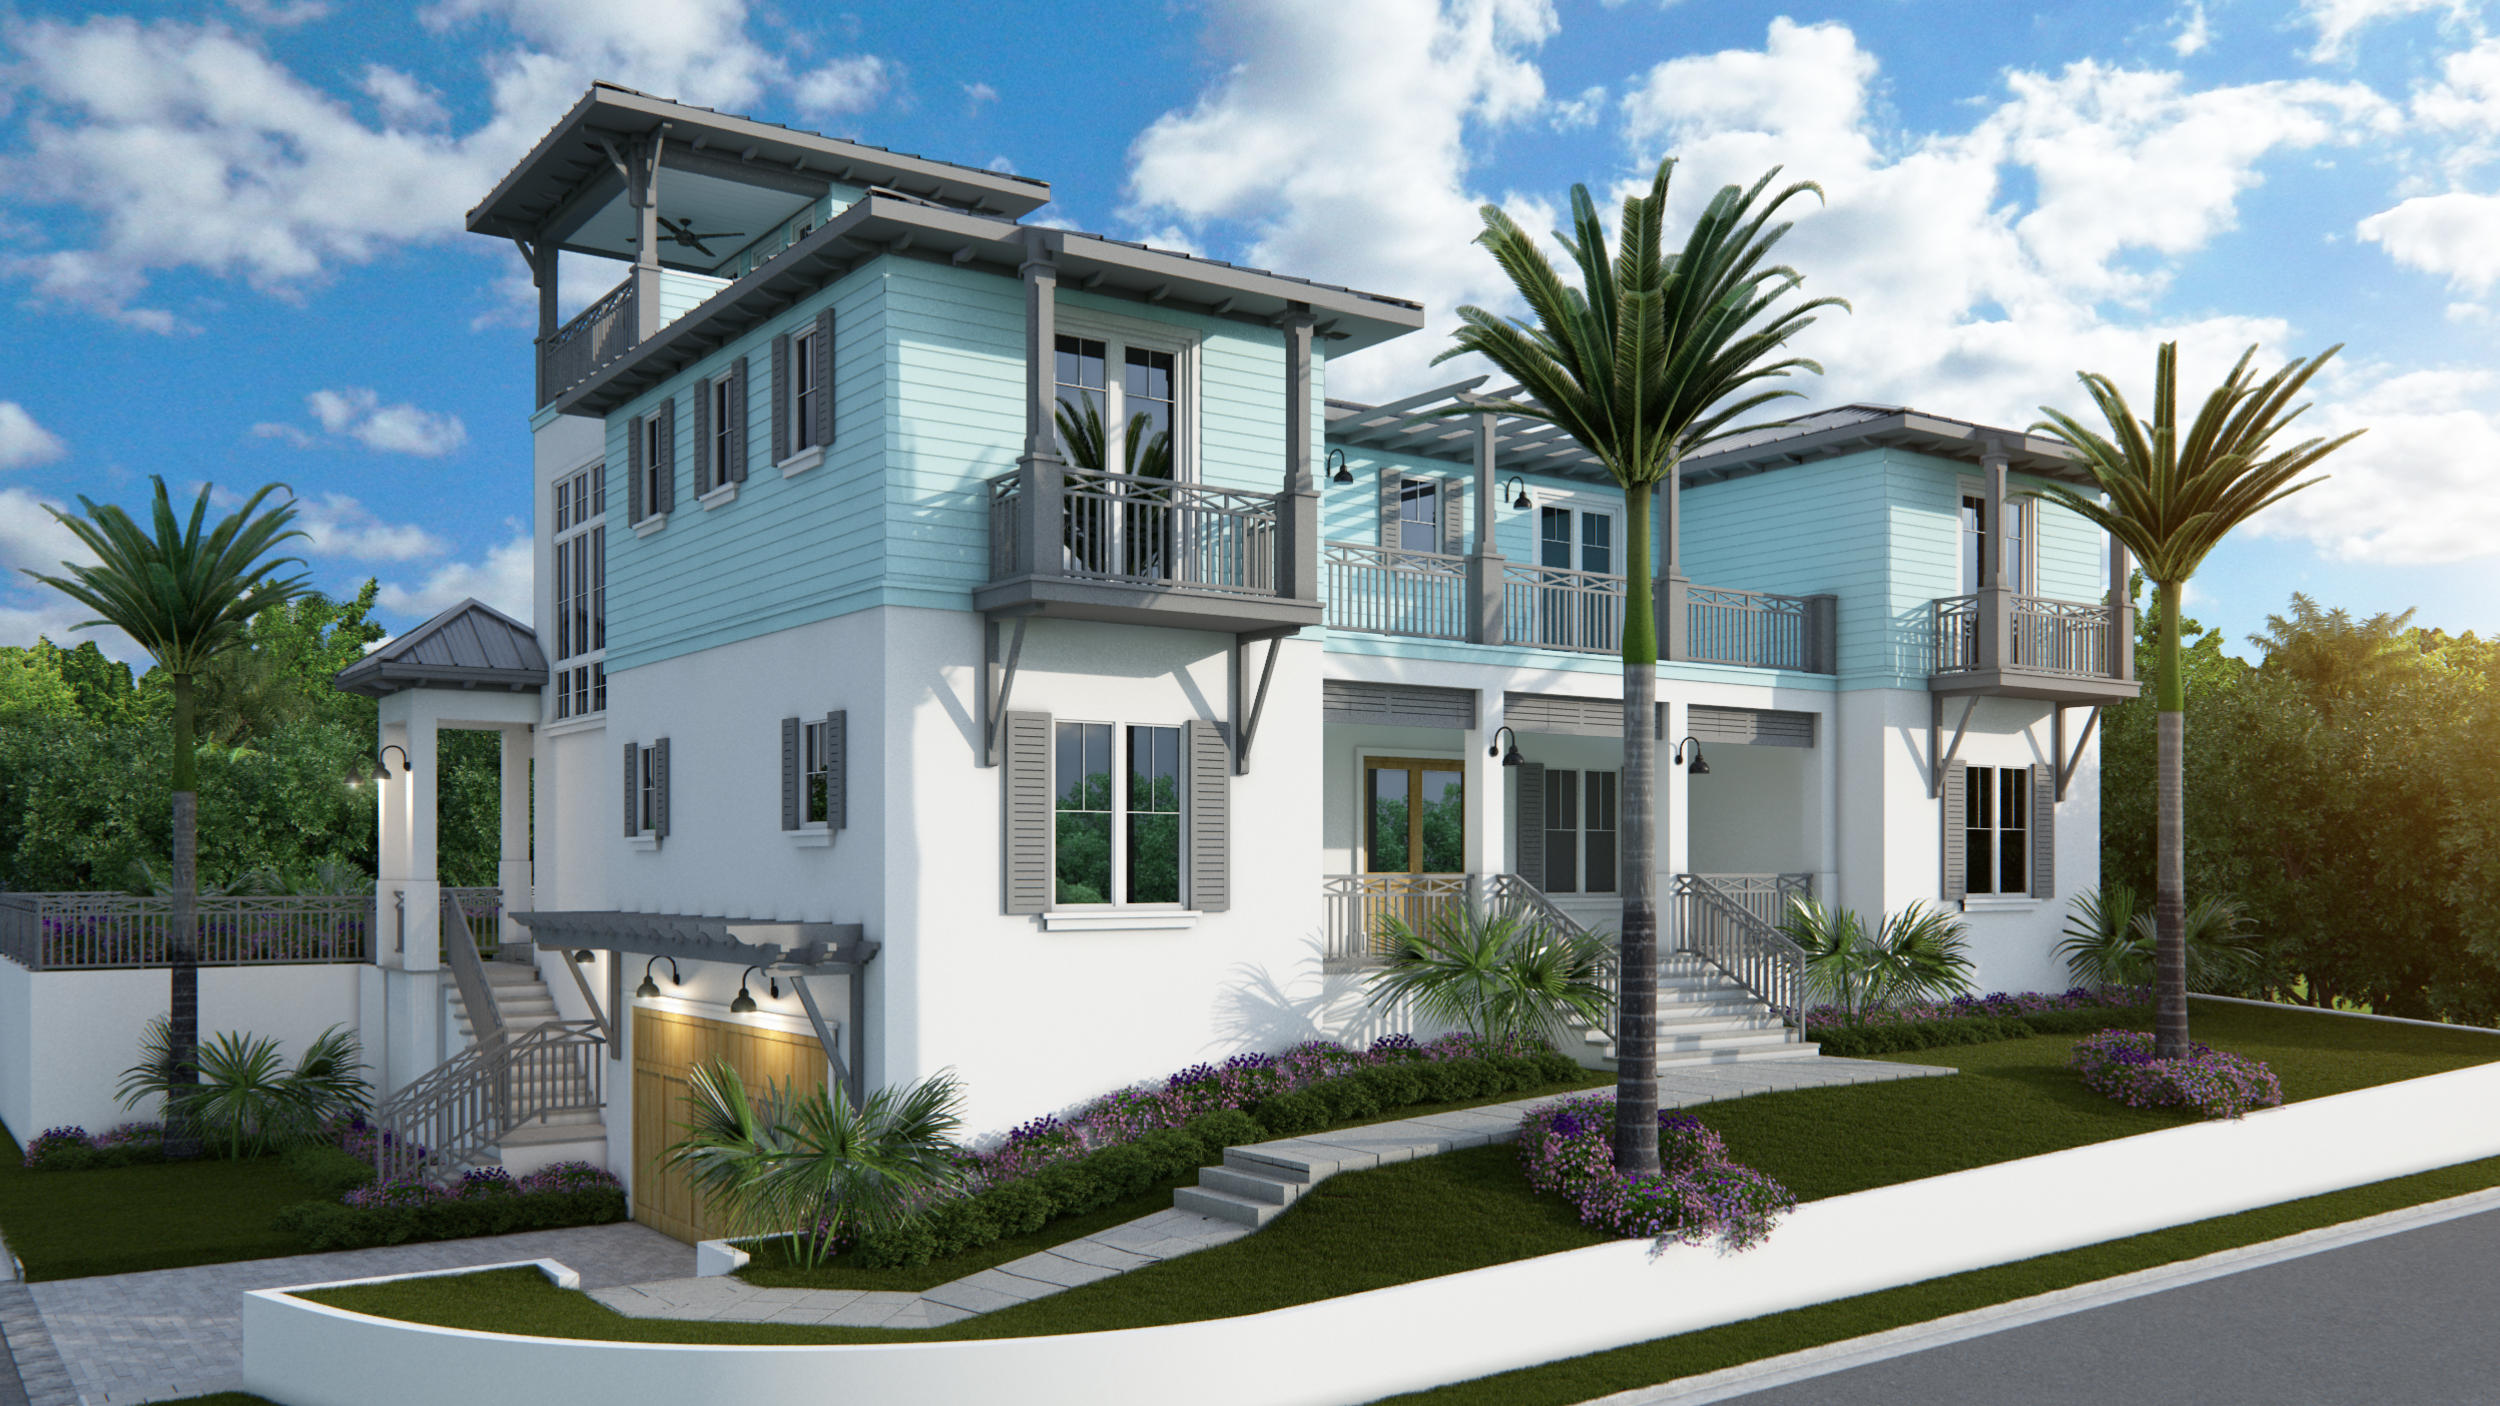 New Home for sale at 381 Ocean Drive in Juno Beach